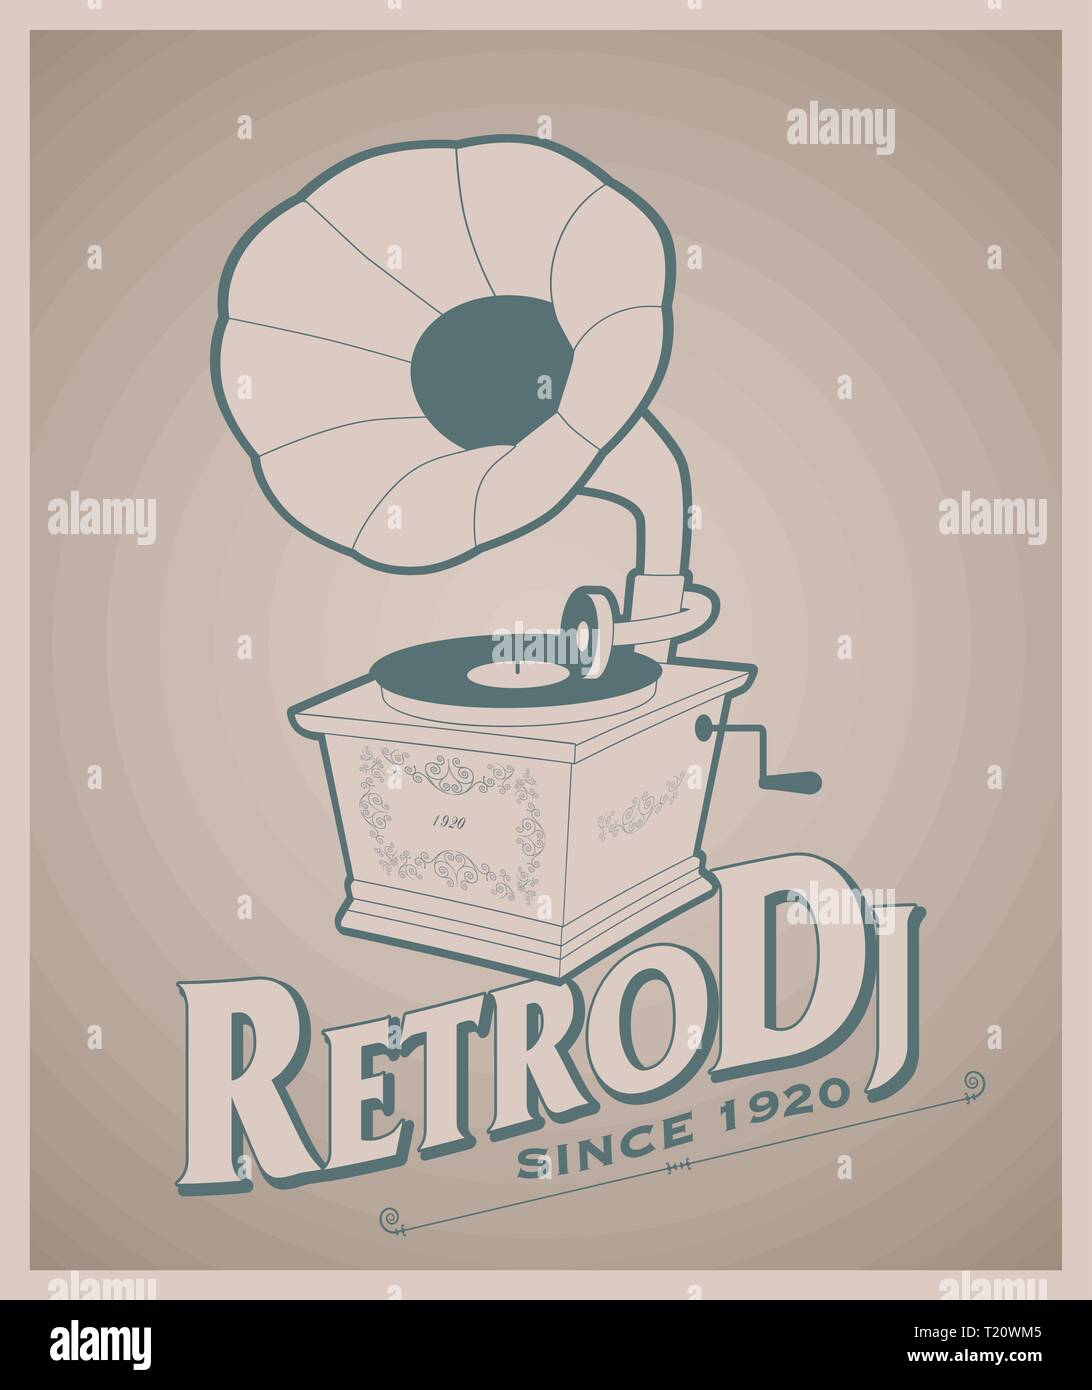 Vintage gramophone and title of old-style lettering. - Stock Vector